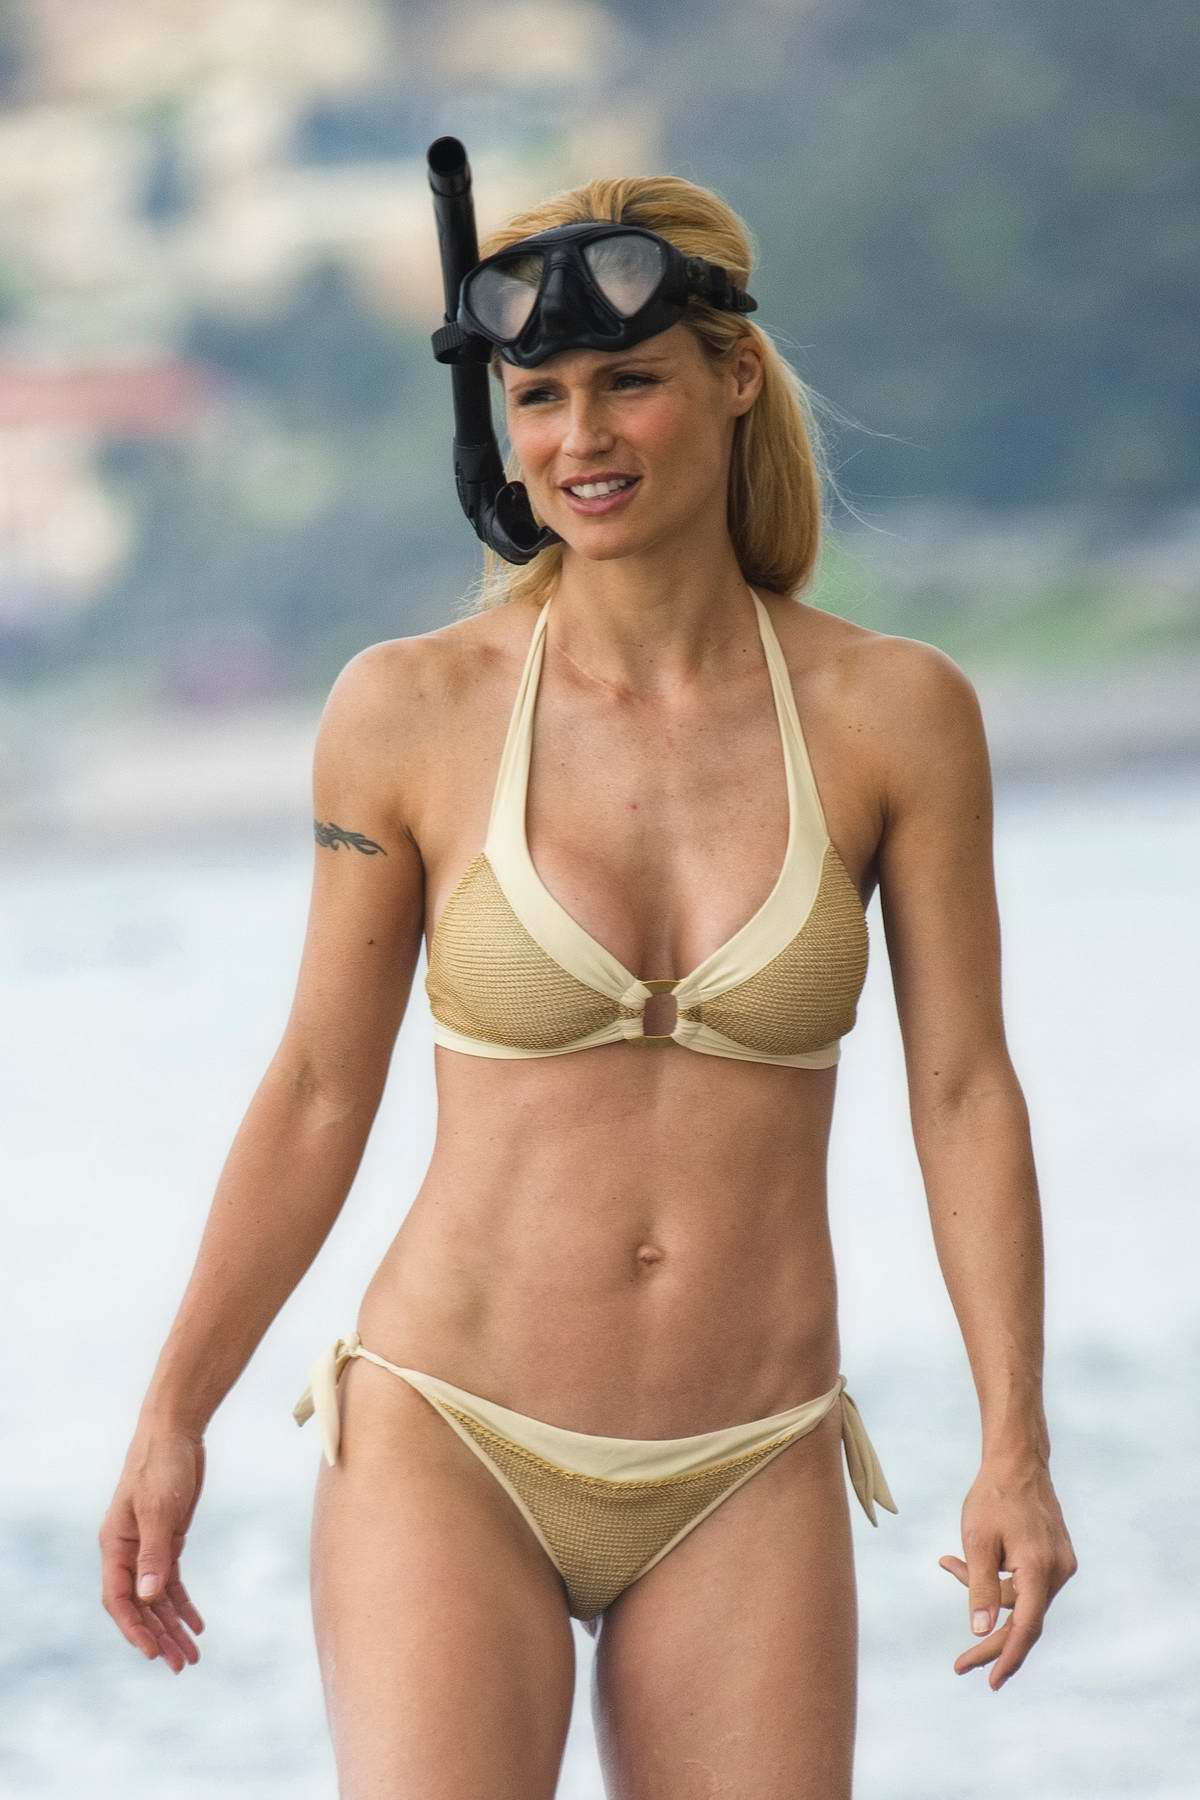 Angelica Celaya En Bikini michelle hunziker in a golden bikini on the beach in